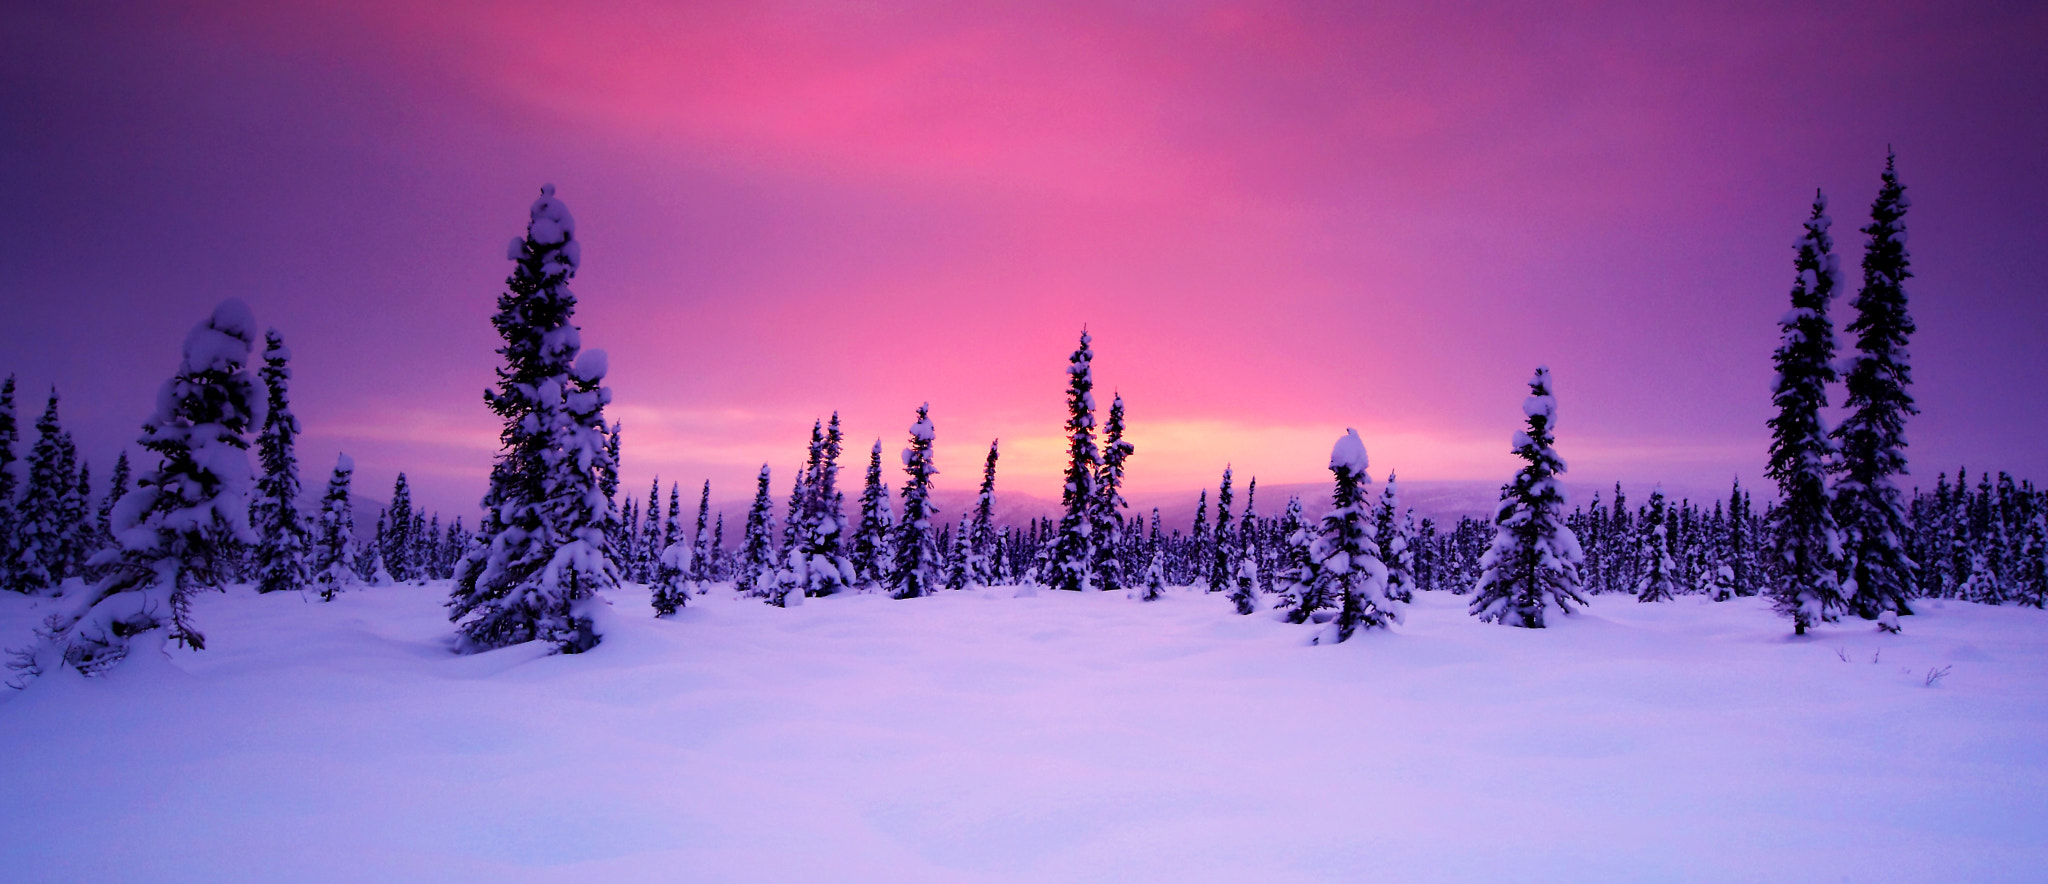 Photograph Winters Glow by Ron Perkins on 500px